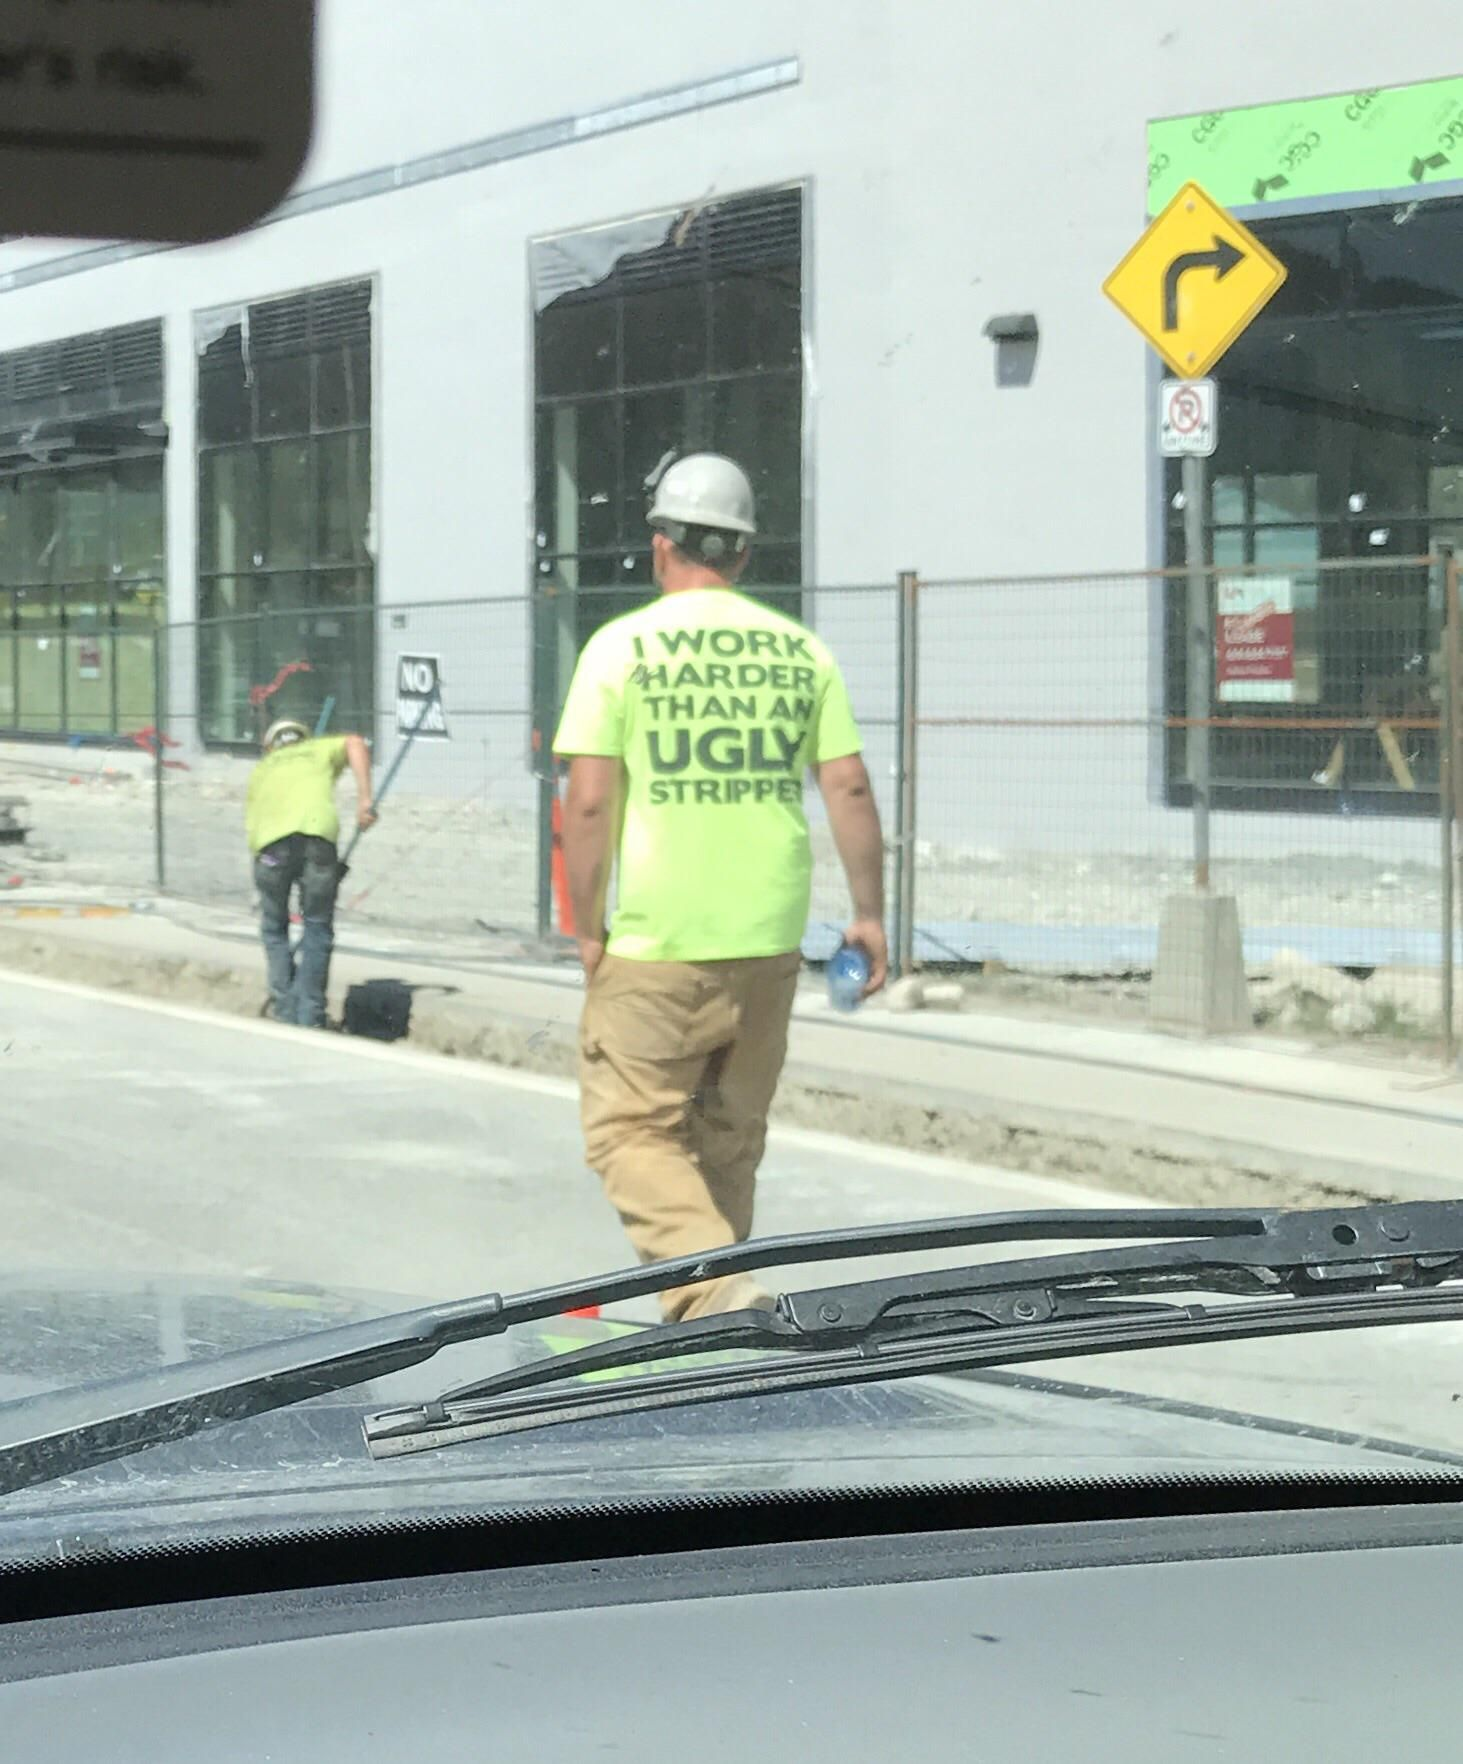 Drove Past This Hard Working Guy